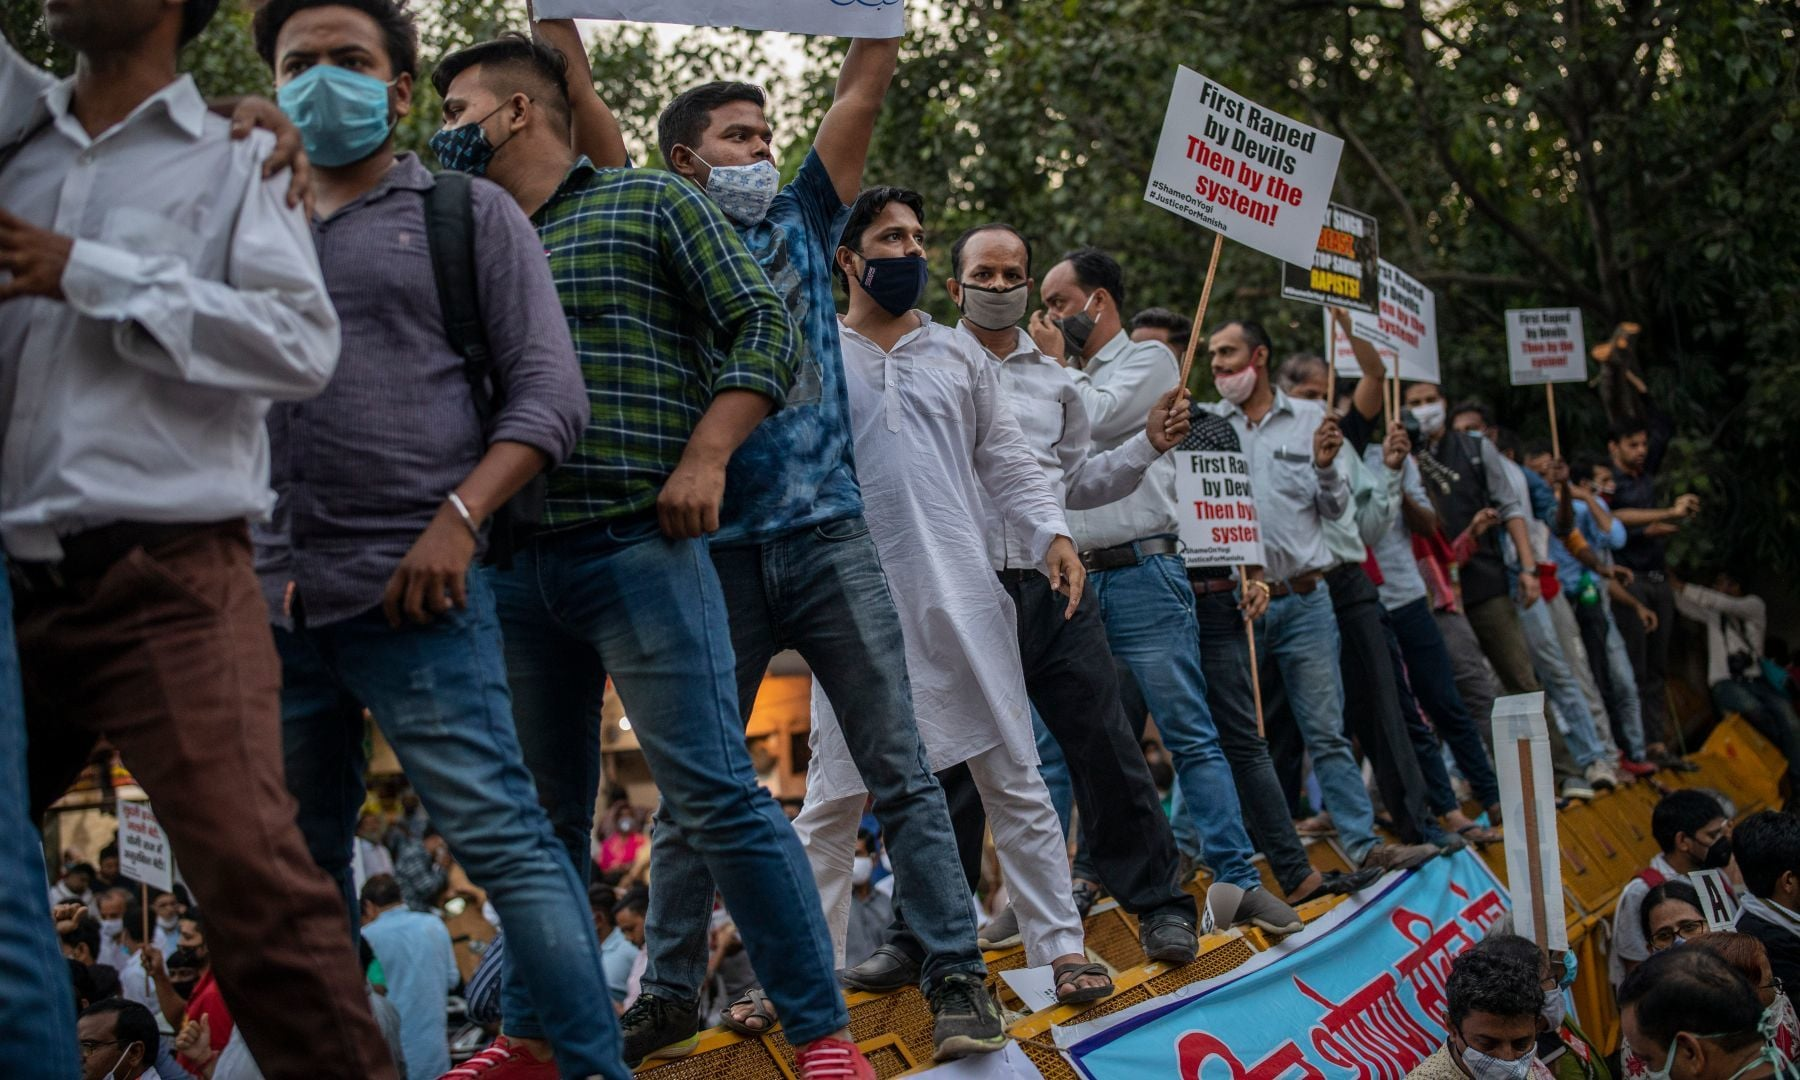 Protestors stand on a barricade and raise their voices against the gang rape and killing of a woman, in New Delhi, India, Friday. — AP